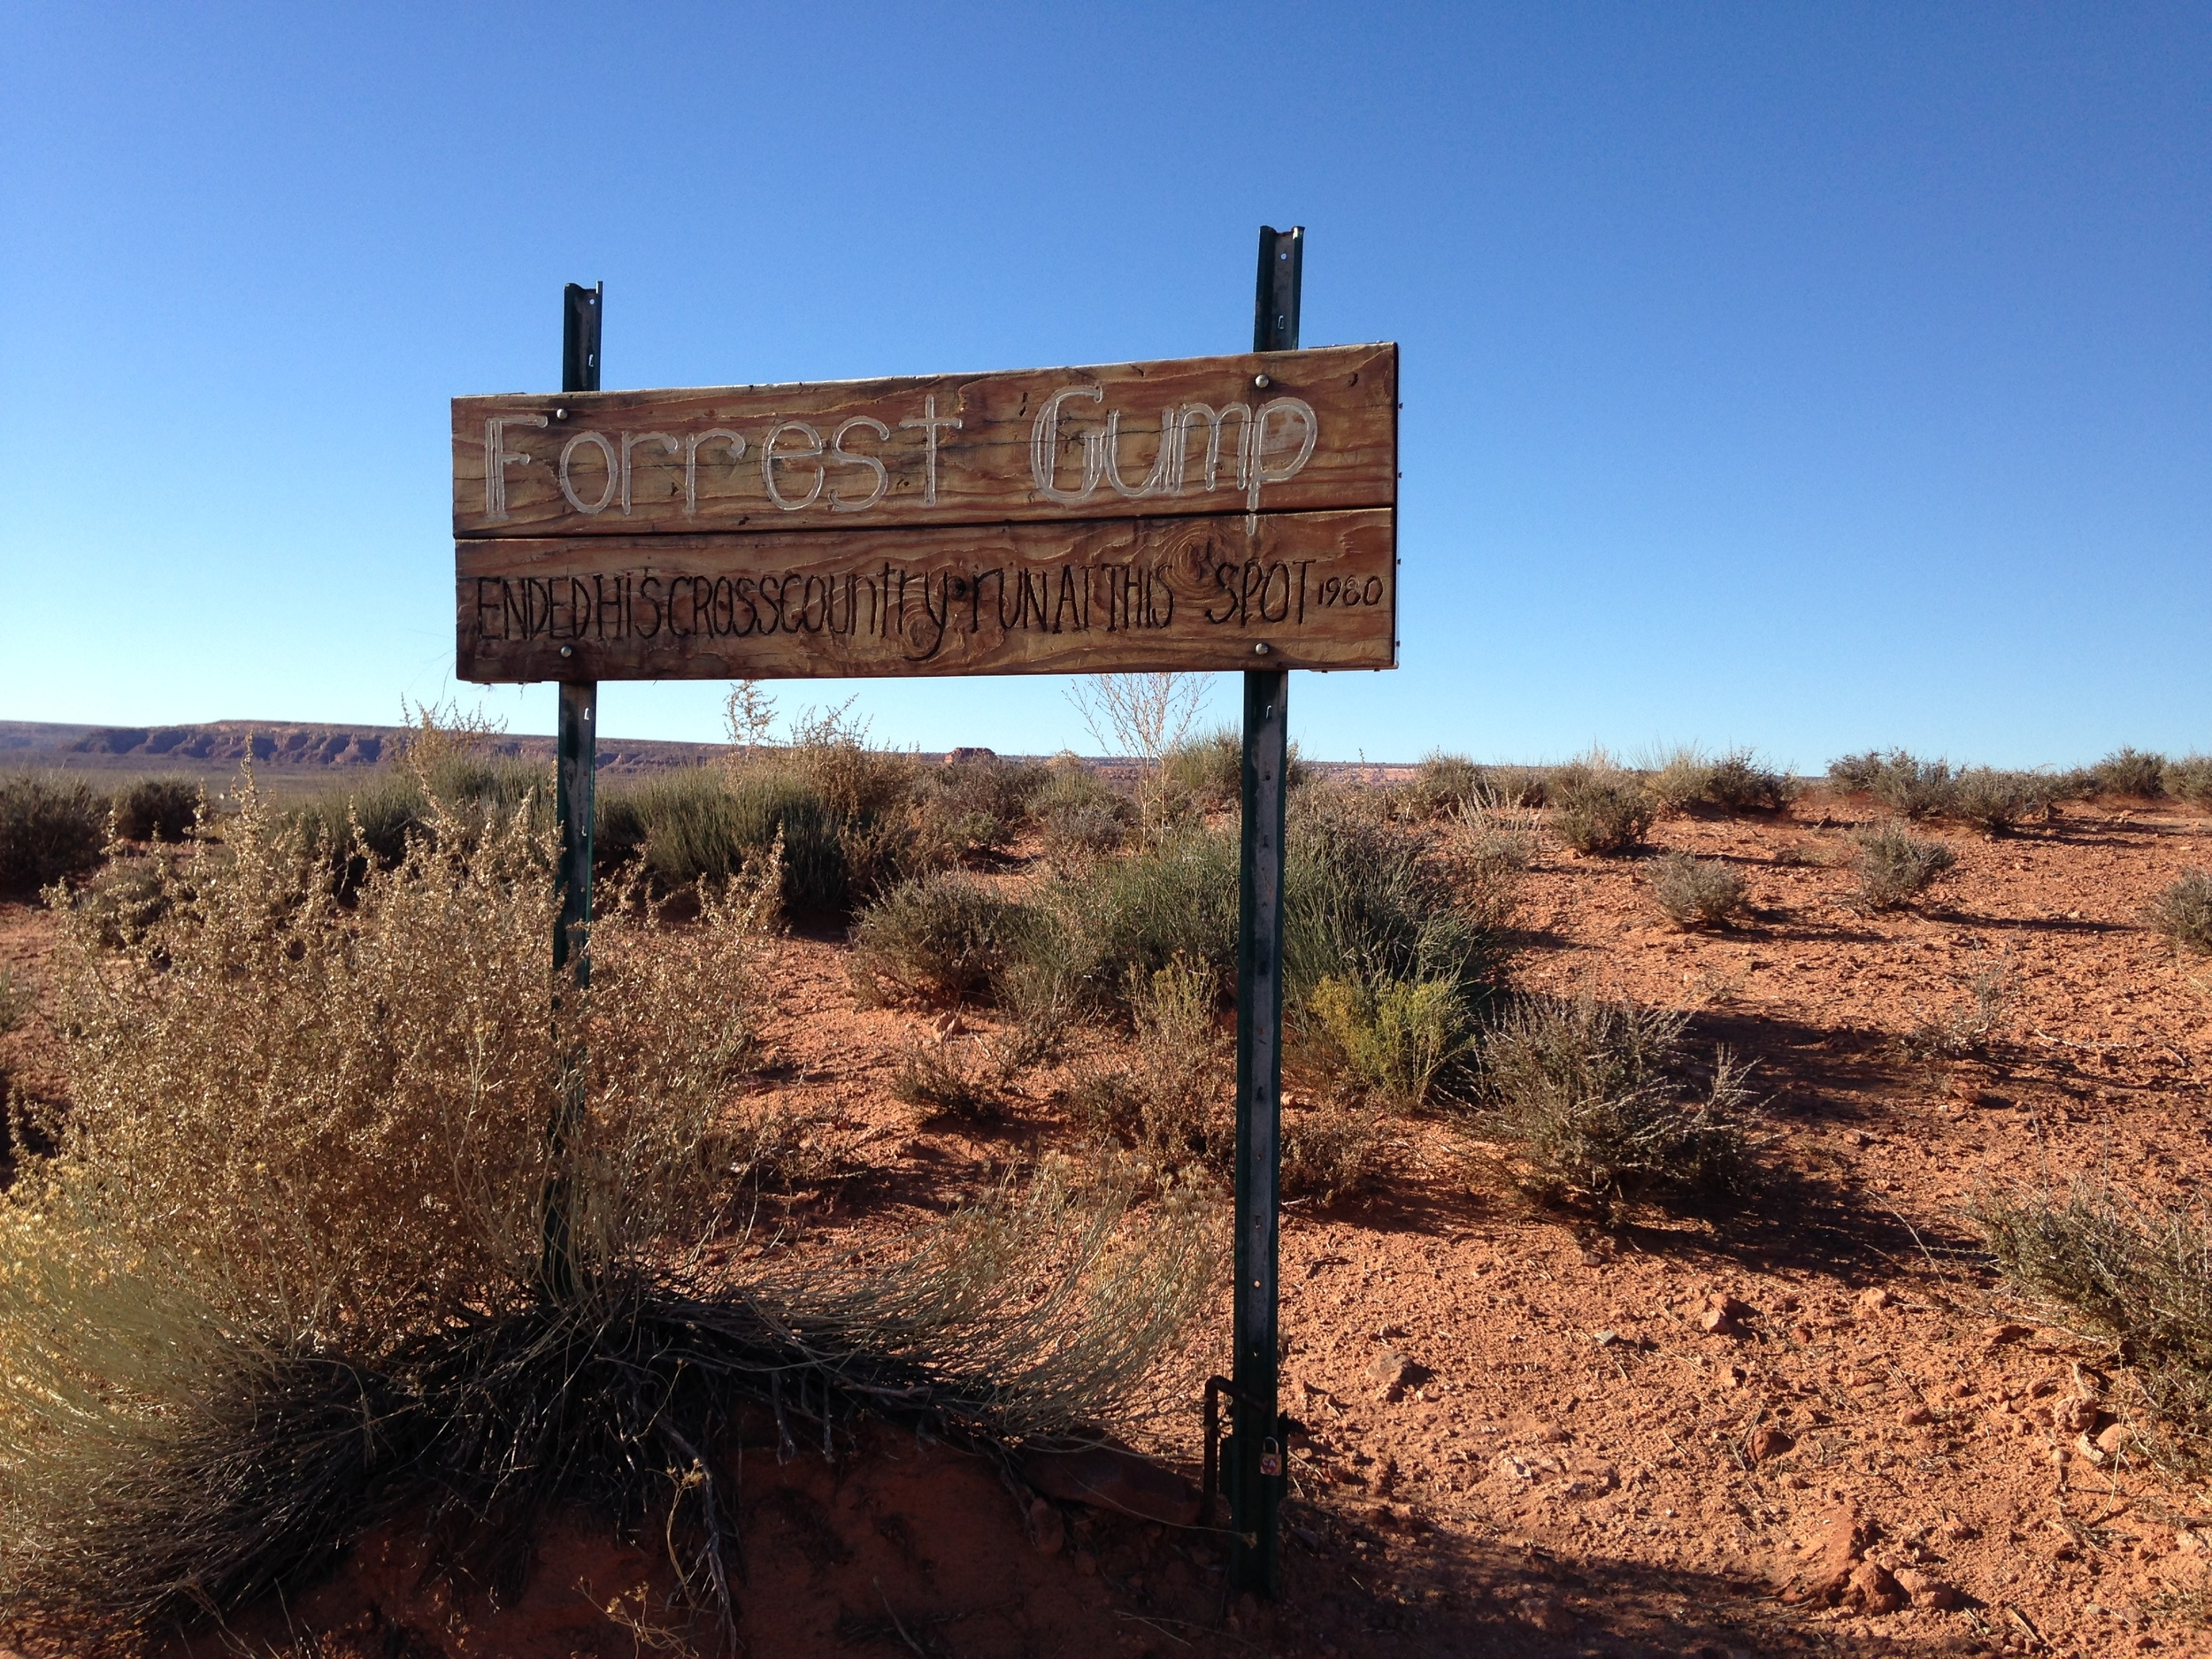 Forest Gump ended his cross country run at this spot 1980! Monument Valley, Arizona